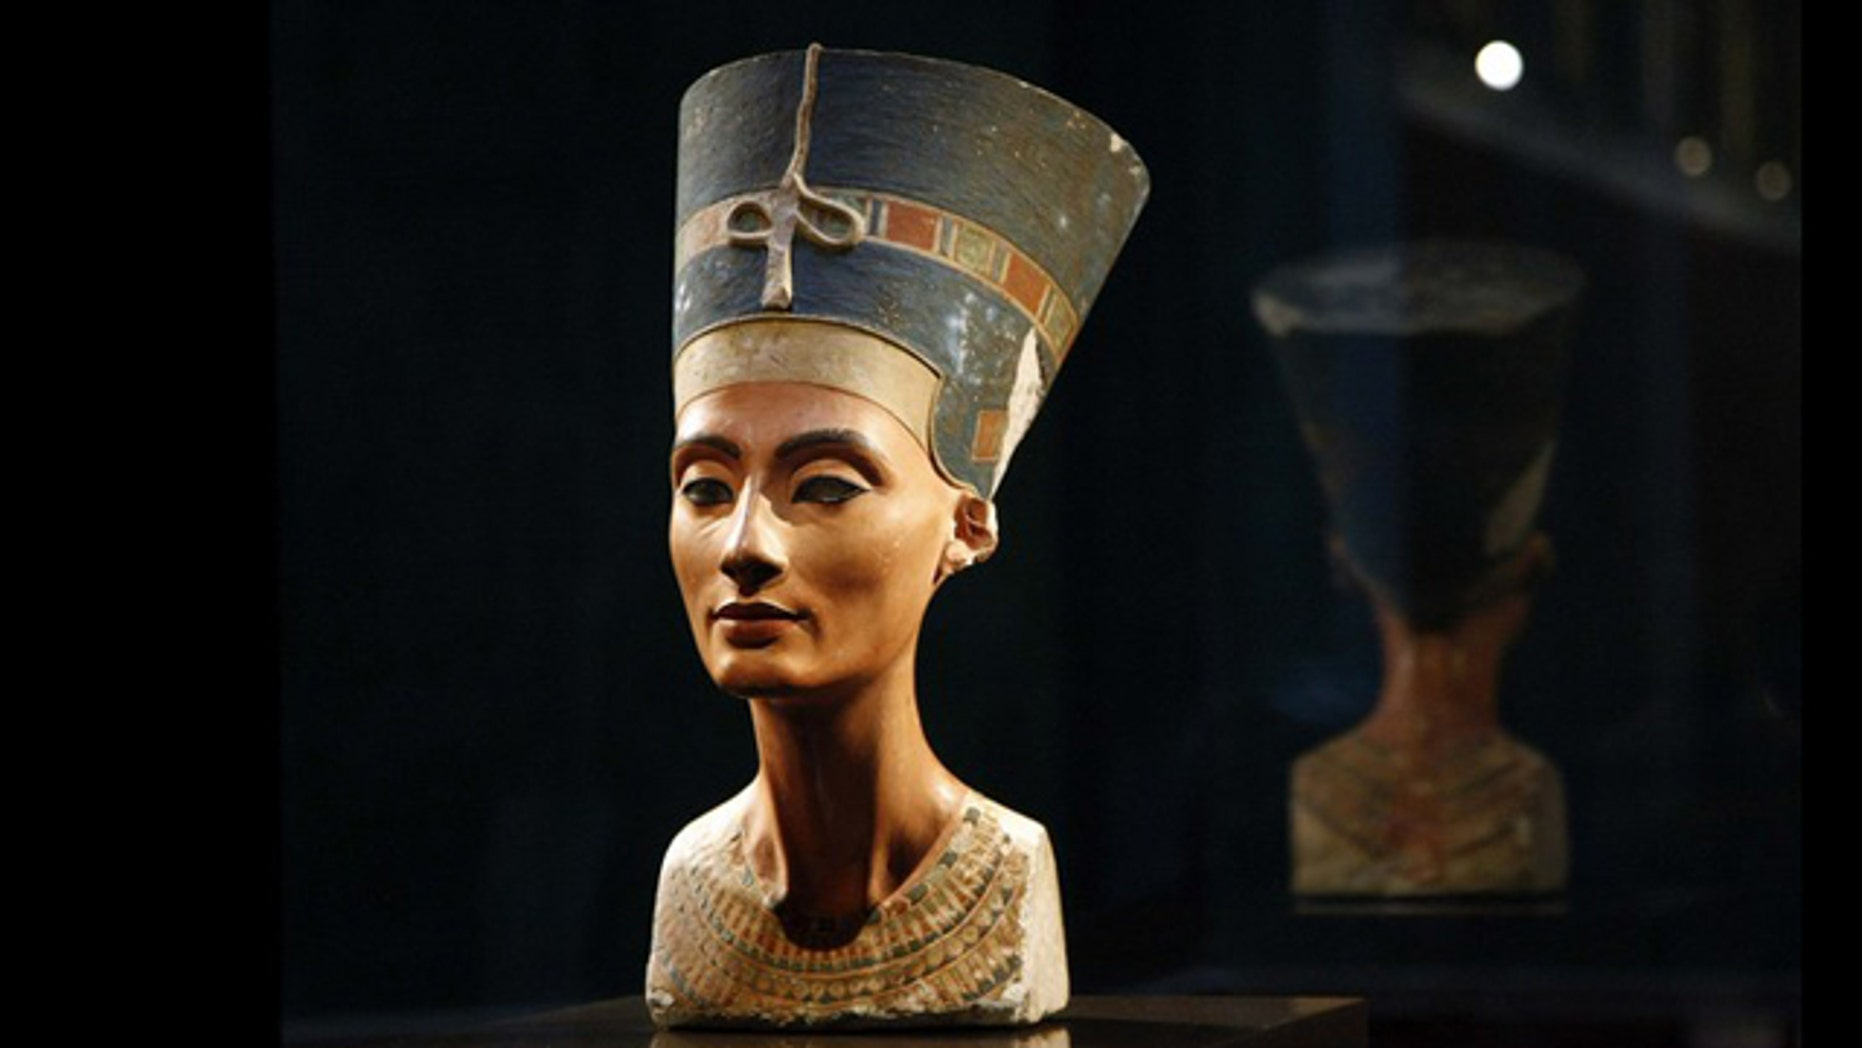 The statue of Queen Nefertiti seen during a press preview at the 'Neues Museum' (New Museum) building in Berlin October 15, 2009. As of January 24, 2011, Egypt has formally requested the return of the famous 3,400-year-old bust, which is part of a permanent Egyptian exhibition on display at the museum in Berlin.